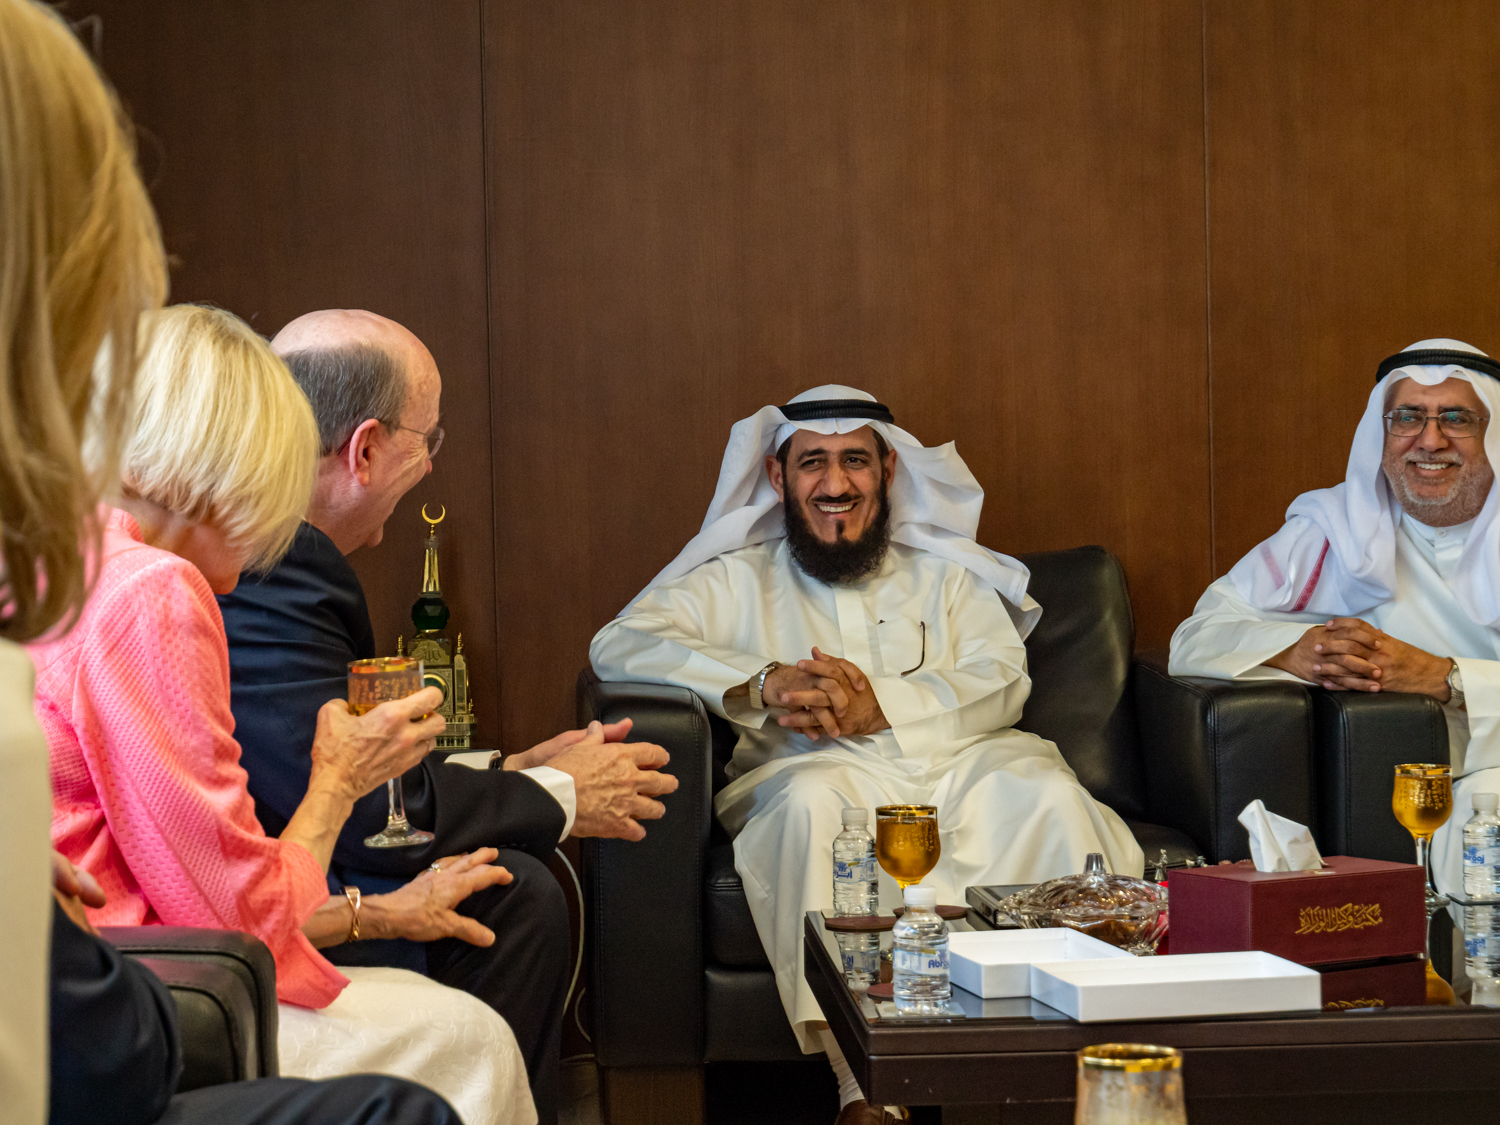 Elder Quentin L. Cook and his wife, Sister Mary Cook, speak to Mr. Fareed Emadi, secretary general of the Supreme Commission for the Promotion of Moderation in the Ministry of Awqaf, and others in Kuwait City on June 10, 2019.